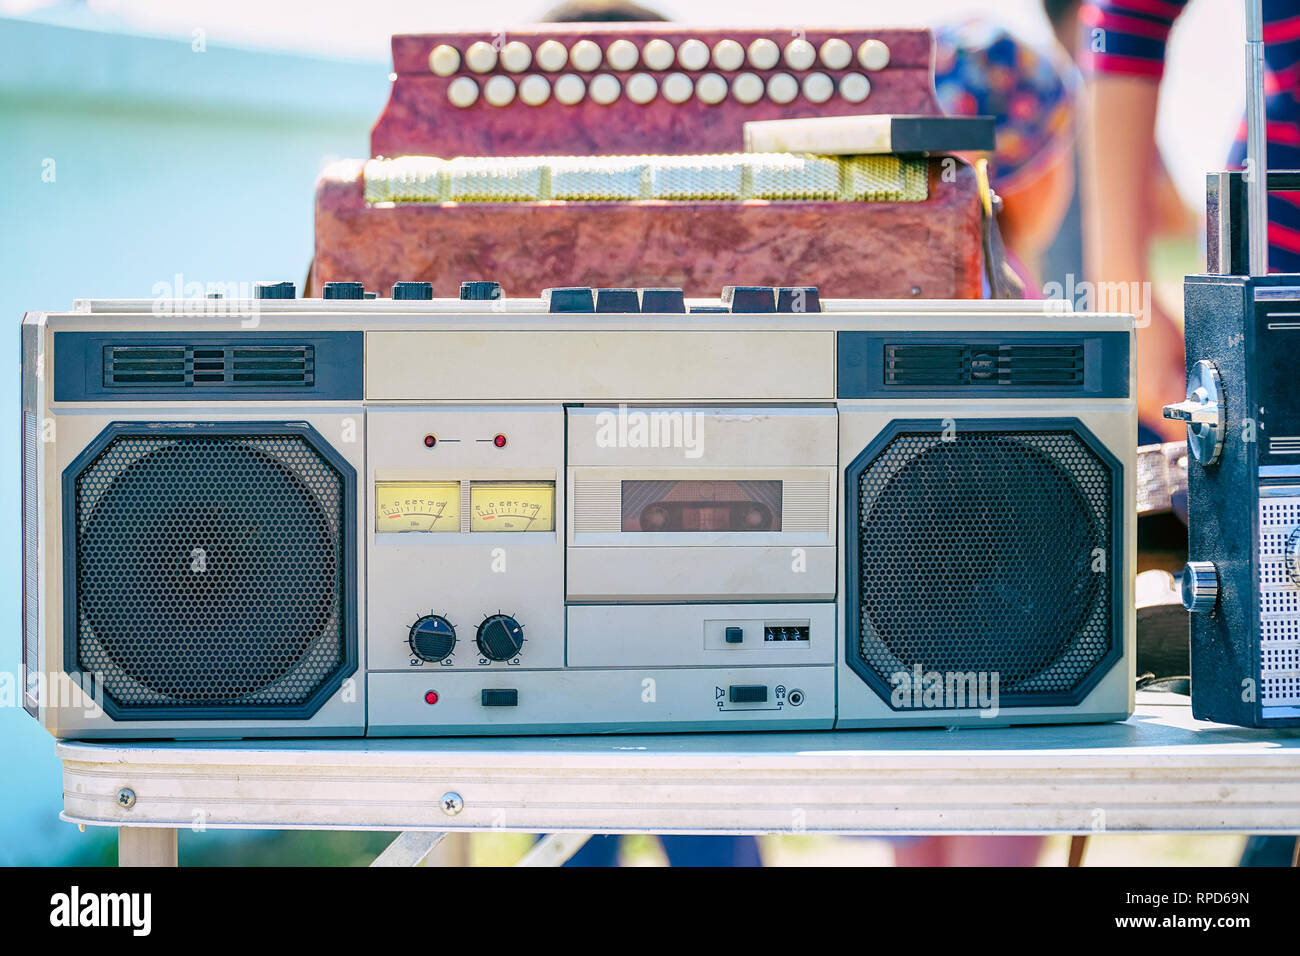 Old cassette recorder of silver color on table - Stock Image